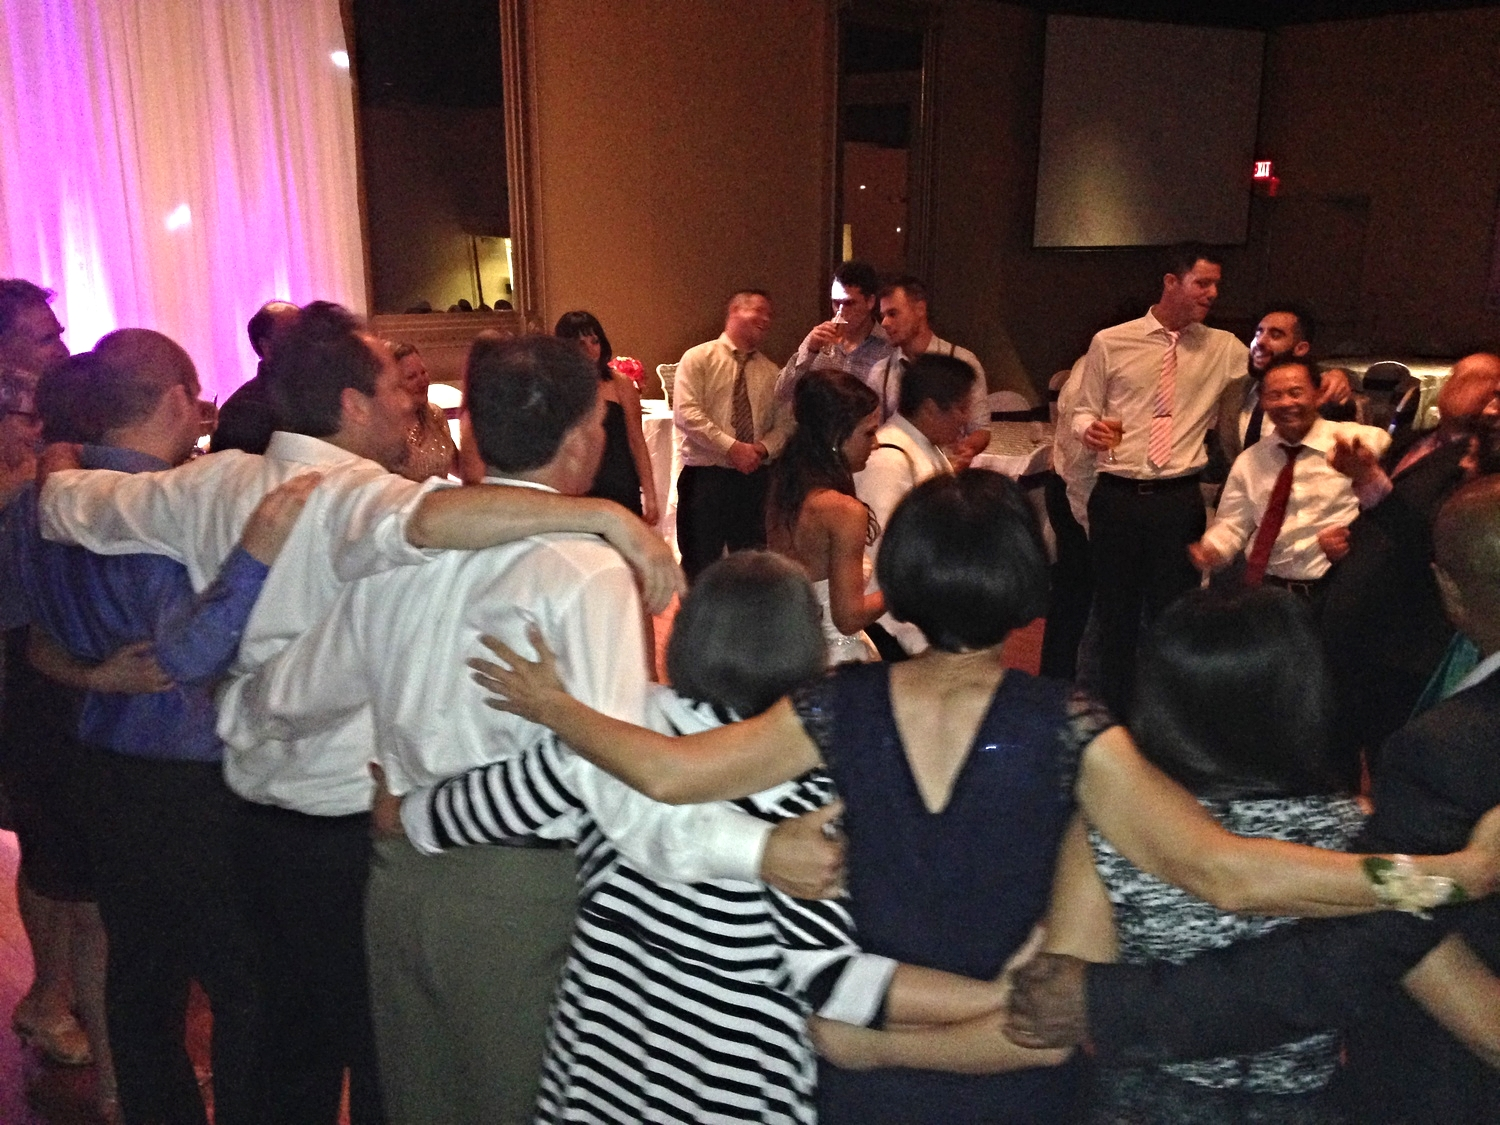 Giant ring of dancers on the floor - this is the kind of family and friends fun we can provide.